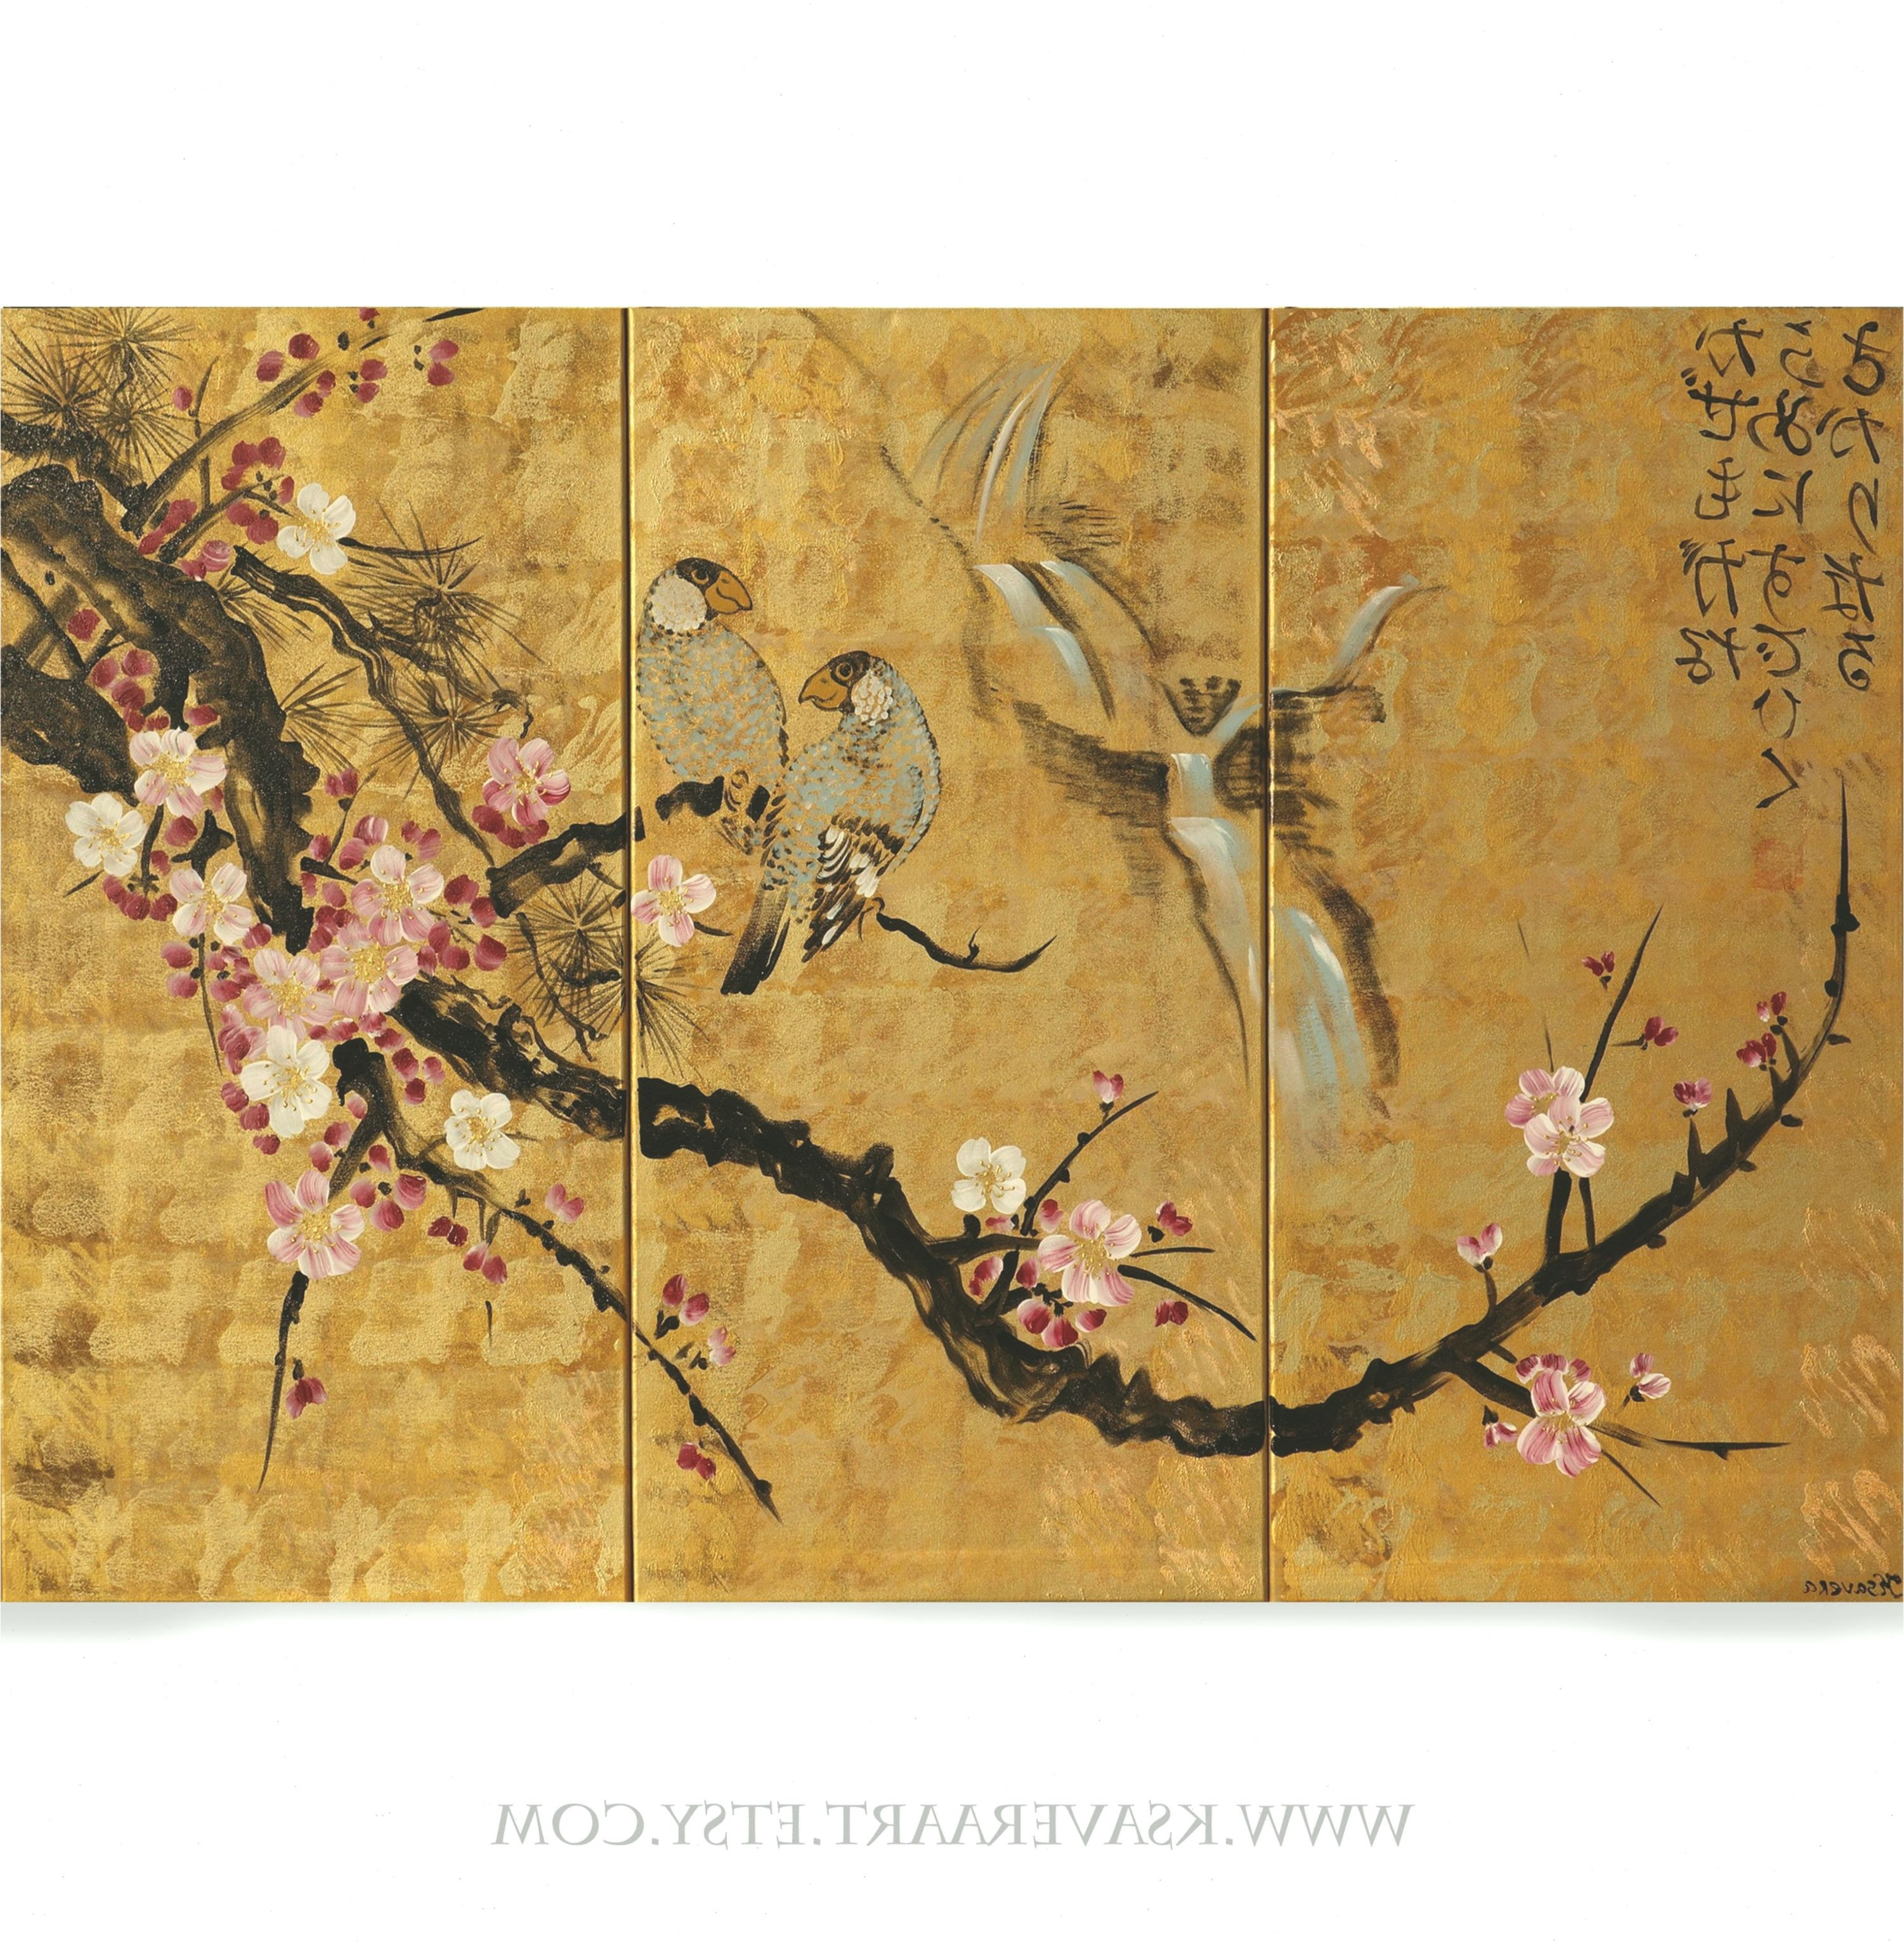 Japan Art Cherry Blossom And Love Birds Japanese Painting Large Paintings Acrylic Gold Wall Art Pillowtexture Acr Japanese Painting Japan Art Large Painting